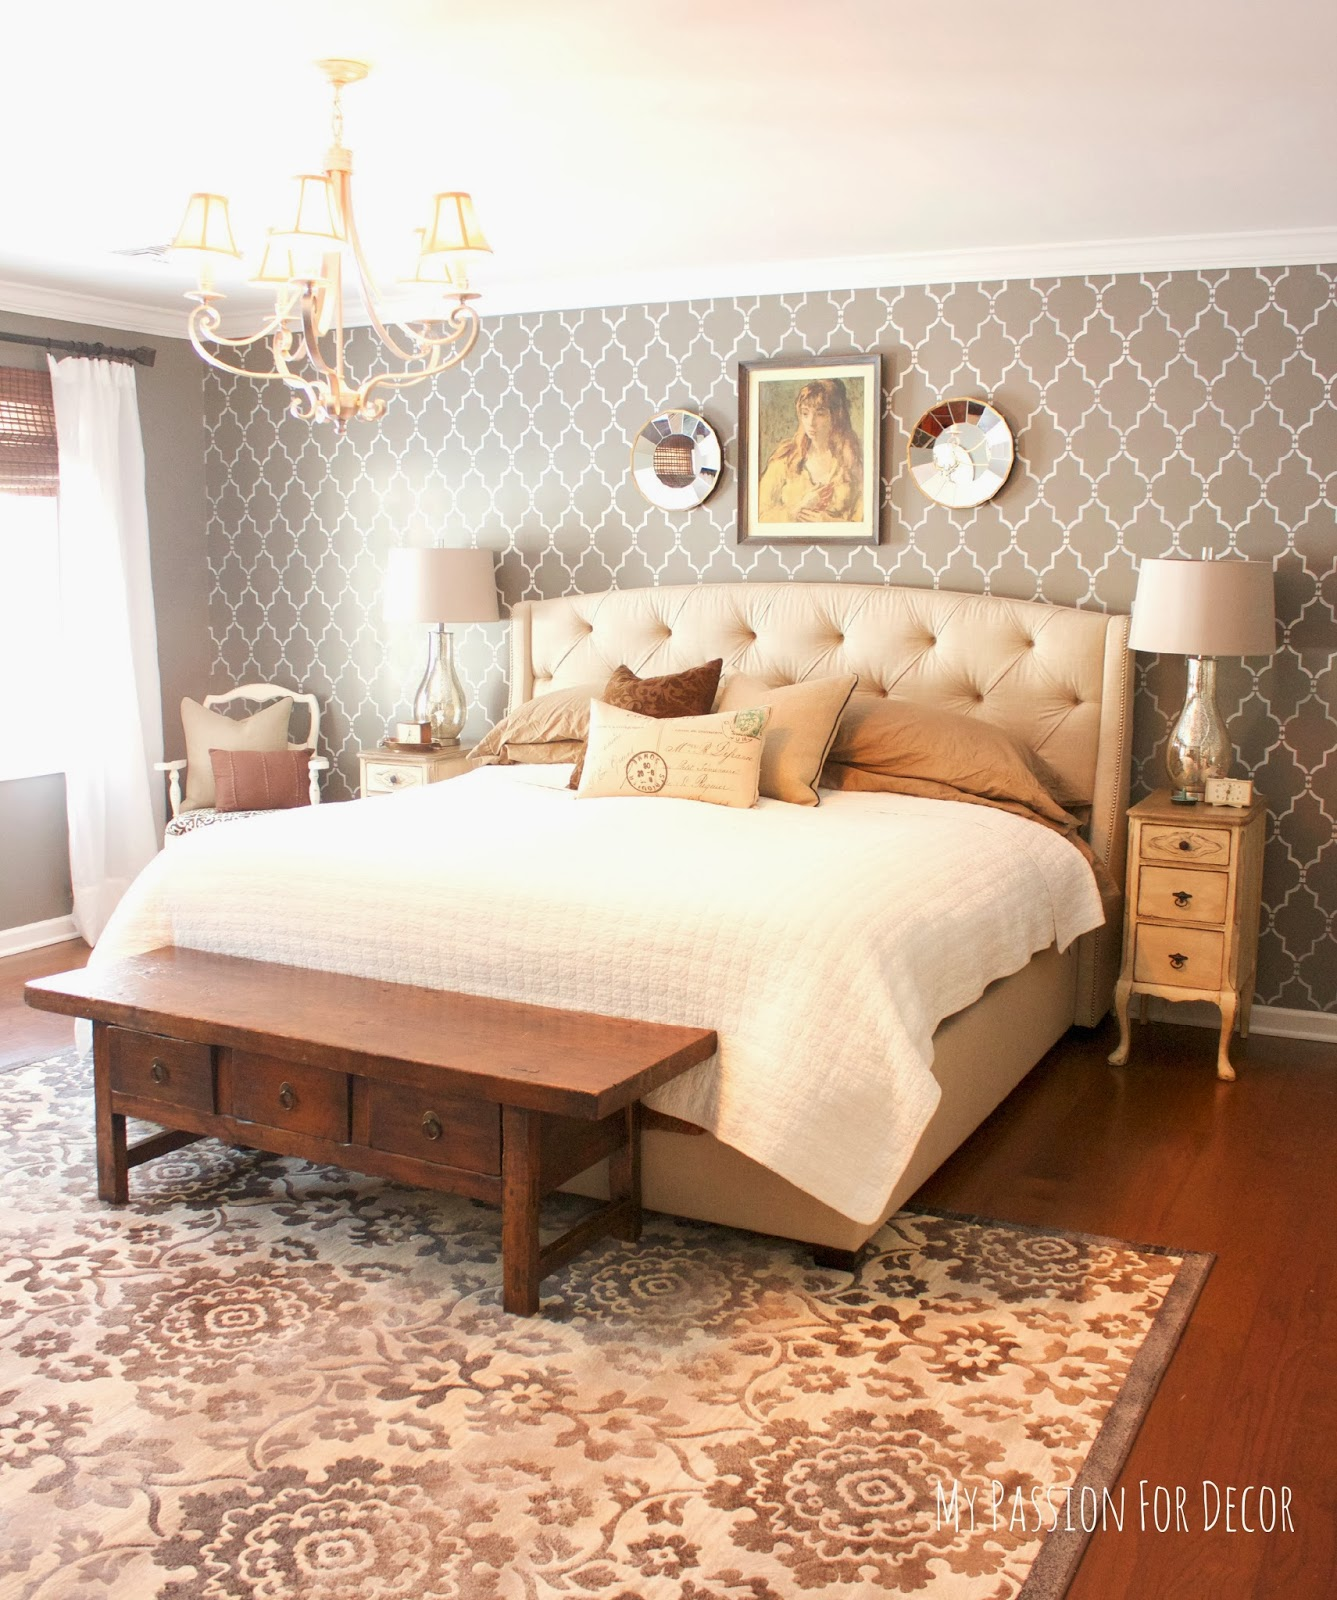 My Passion For Decor Master Bedroom Makeover Using Cutting Edge Stencils